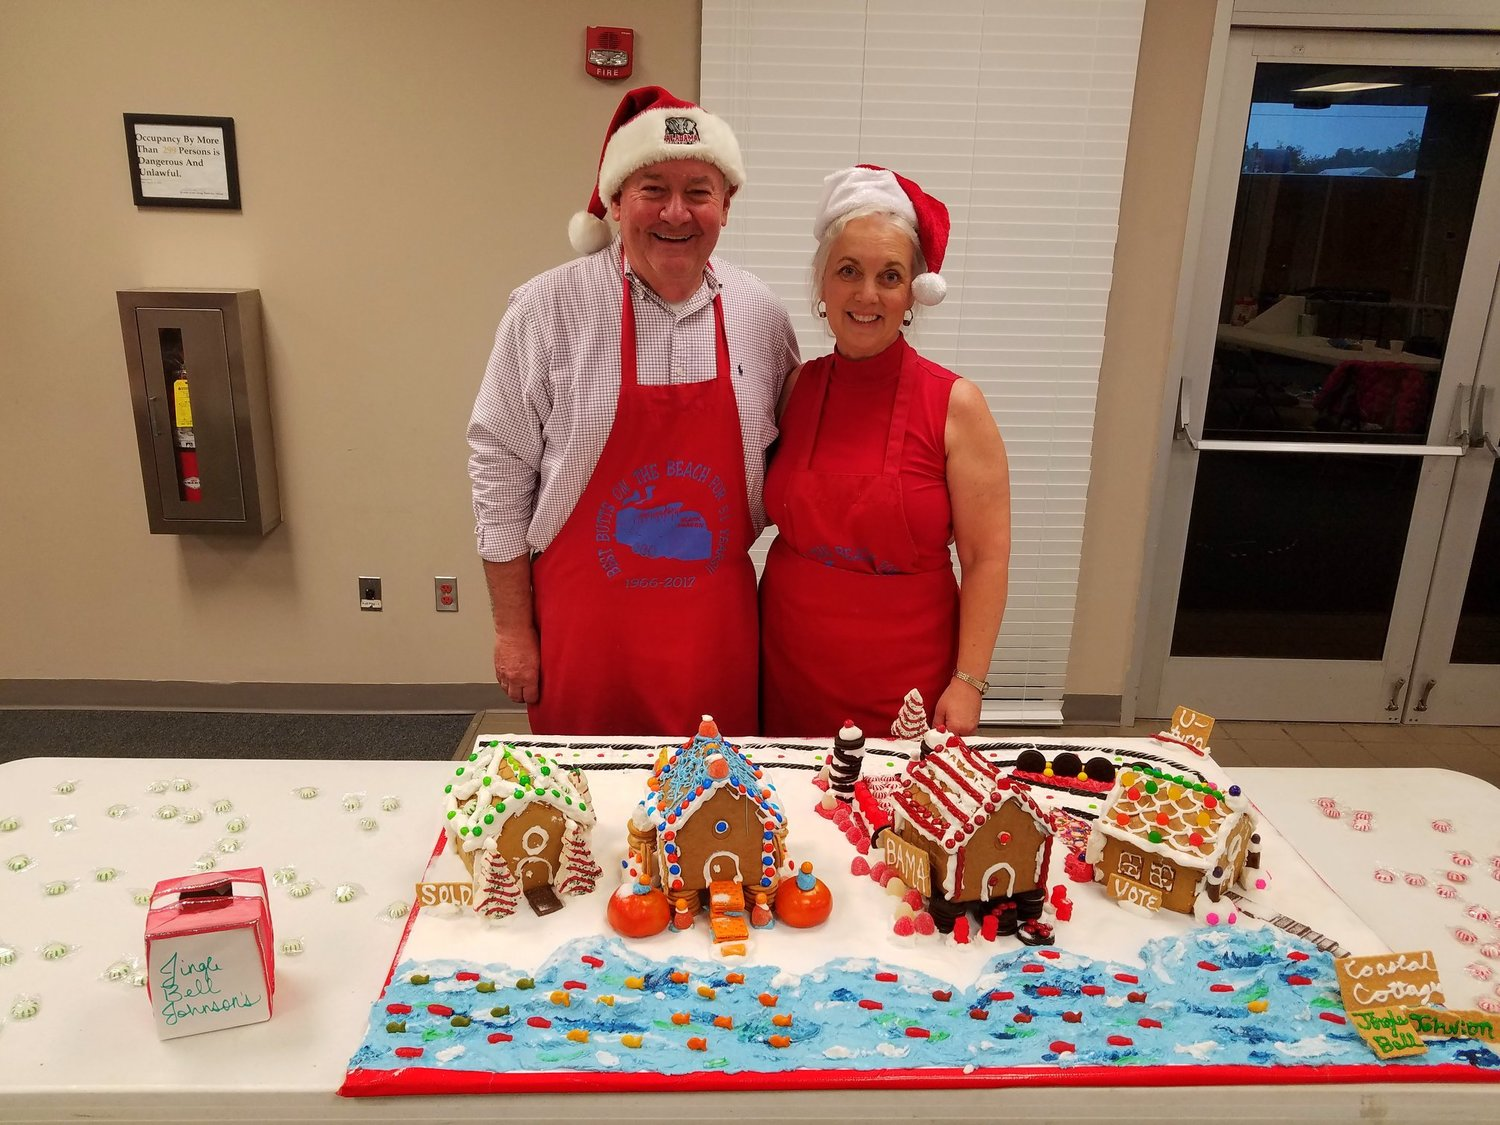 Jerry and Yolanda Johnson were the 2018 Gingerbread Jam winners for the Family Category.